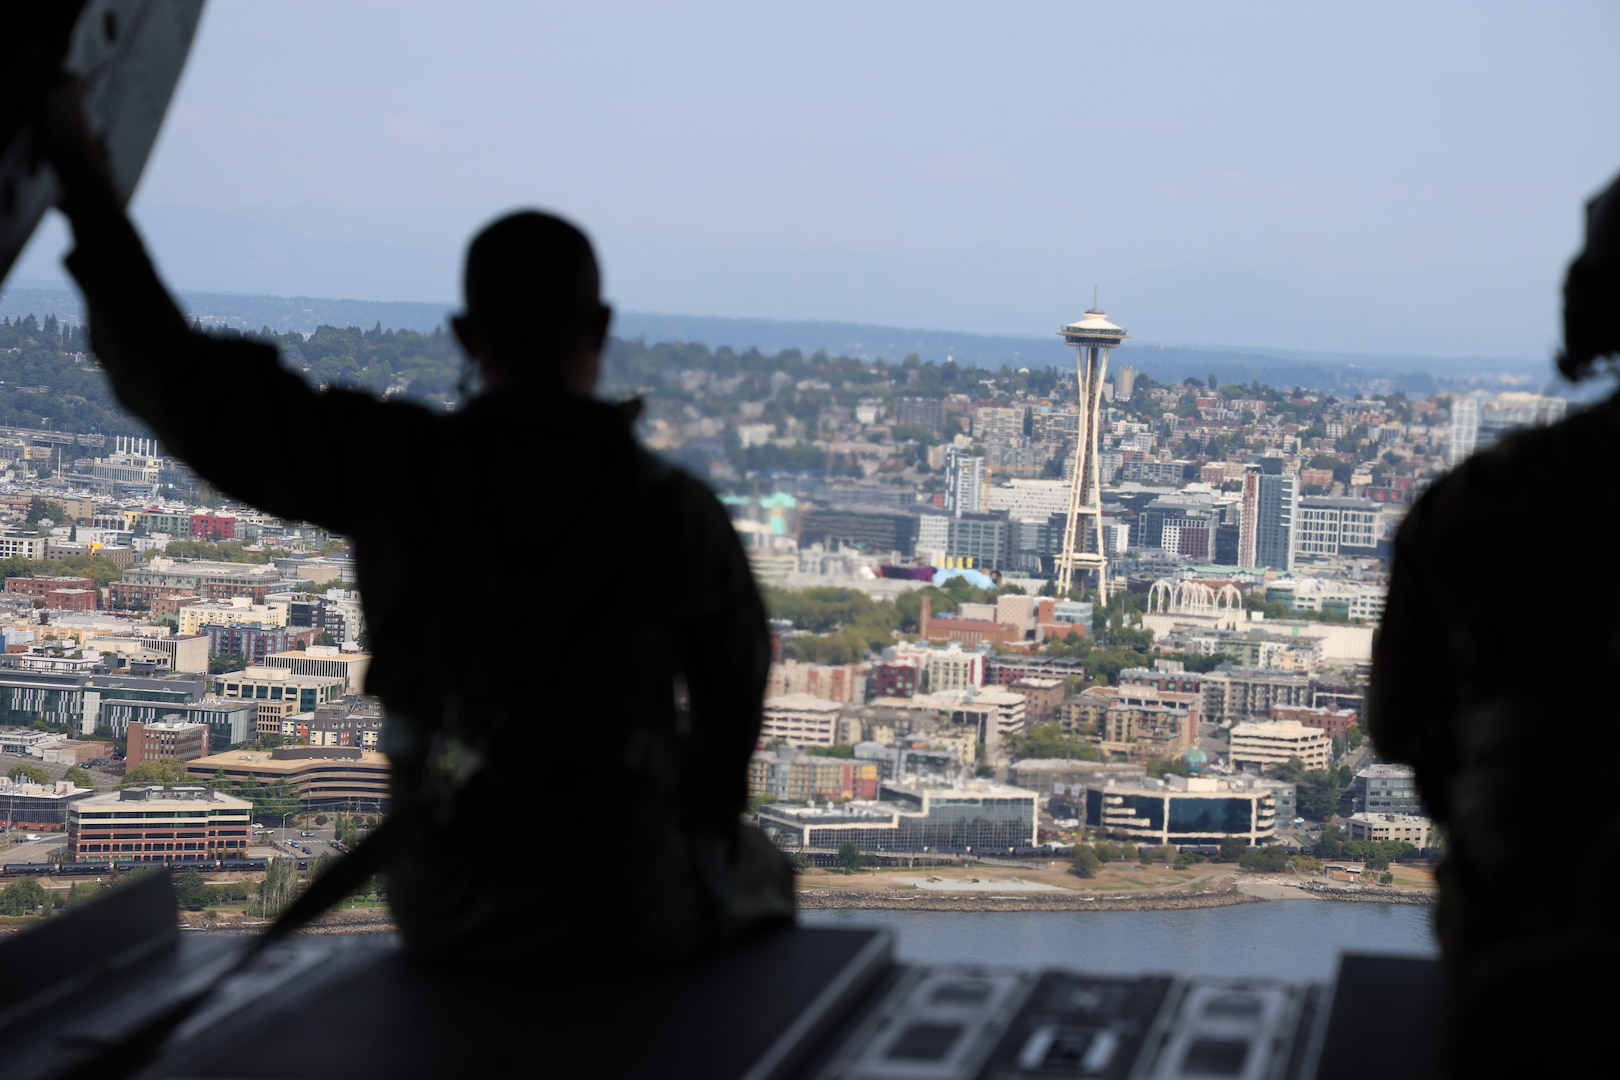 A member of the Royal Thai Army sits on the ramp of a CH-47 Chinook helicopter as it flies above Seattle, Aug. 25, 2021. The Thai Army aviators were taking part in a three-week aviation exchange with members of the Washington National Guard's 96th Aviation Troop Command.